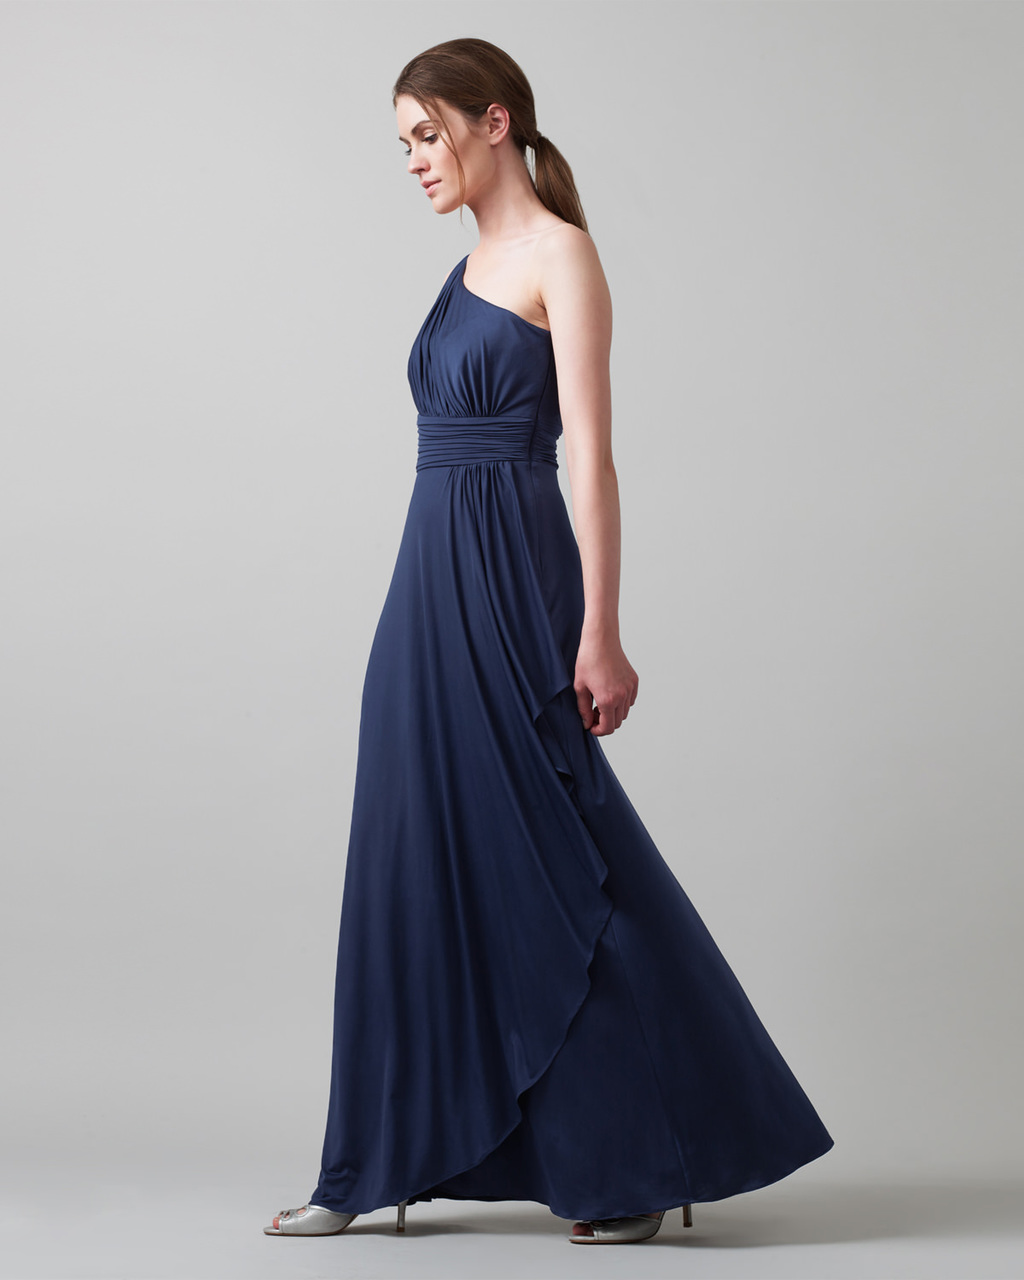 Saffron Dress - pattern: plain; sleeve style: sleeveless; style: maxi dress; neckline: asymmetric; predominant colour: navy; length: floor length; fit: fitted at waist & bust; occasions: occasion; sleeve length: sleeveless; pattern type: fabric; texture group: other - light to midweight; season: a/w 2015; wardrobe: event